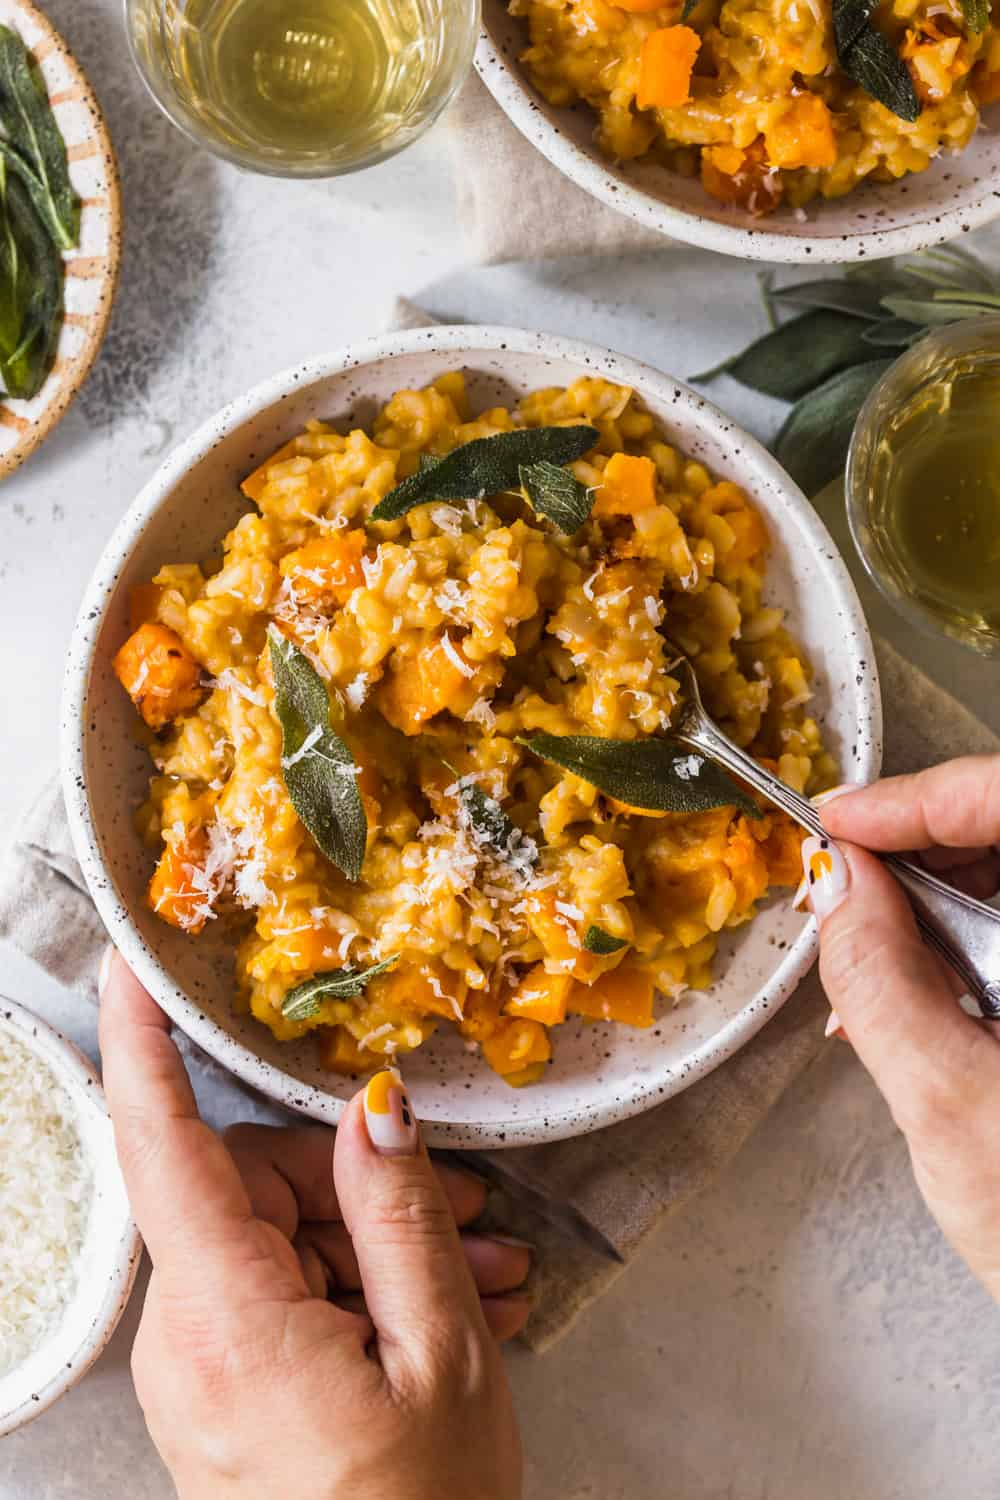 Woman's hands holding a white bowl full of cooked risotto with roasted squash and sage on top.